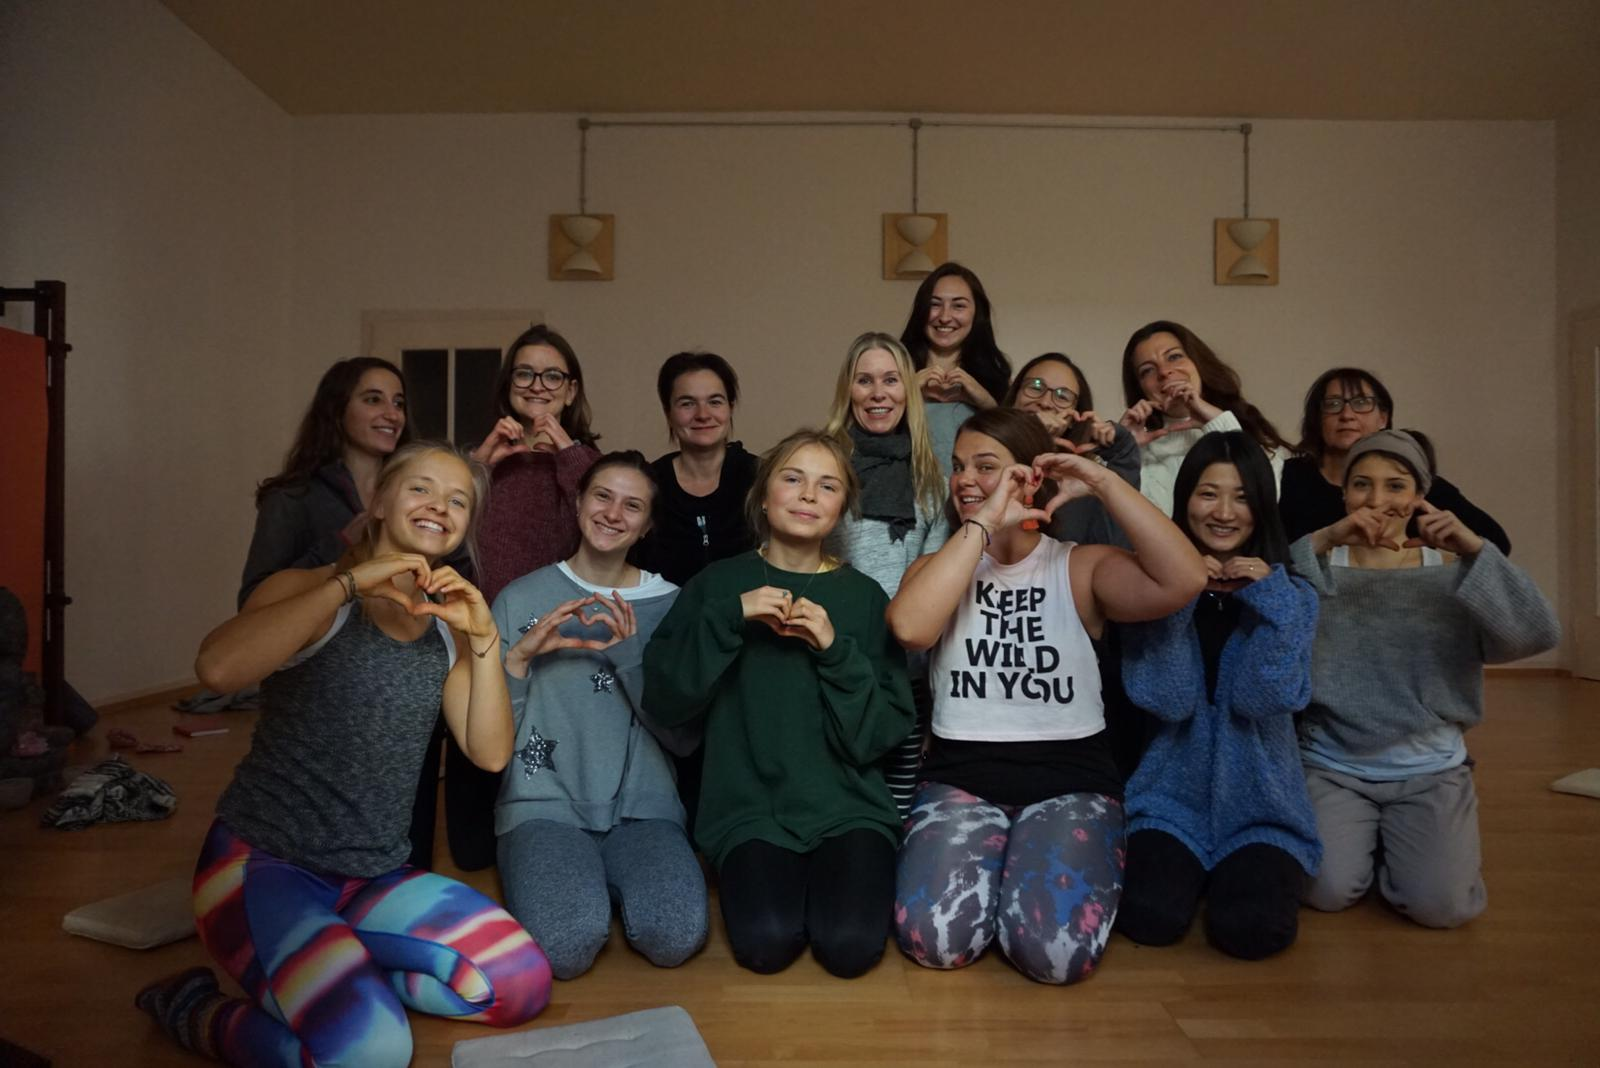 The group of amazing women who came along to our Women's Wellness Workshop.